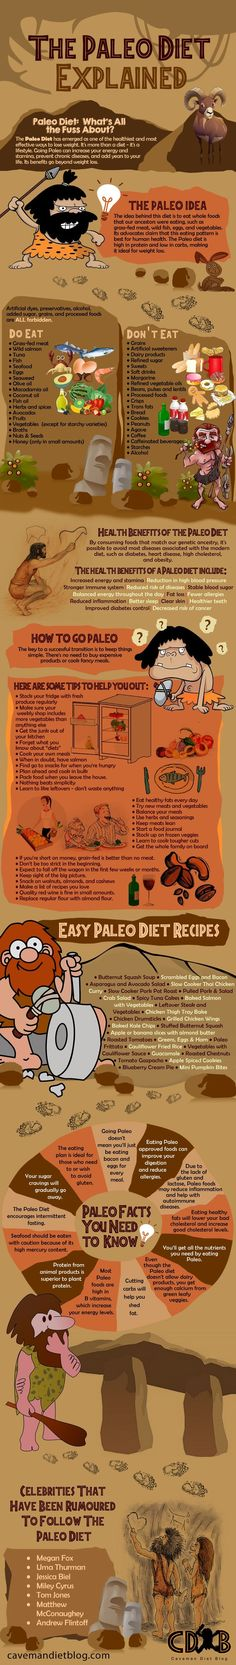 The Paleo Diet Explained - No Grains, dairy or sugar are common in restriction diets. About 10% may show some improvement in ADHD symptoms.